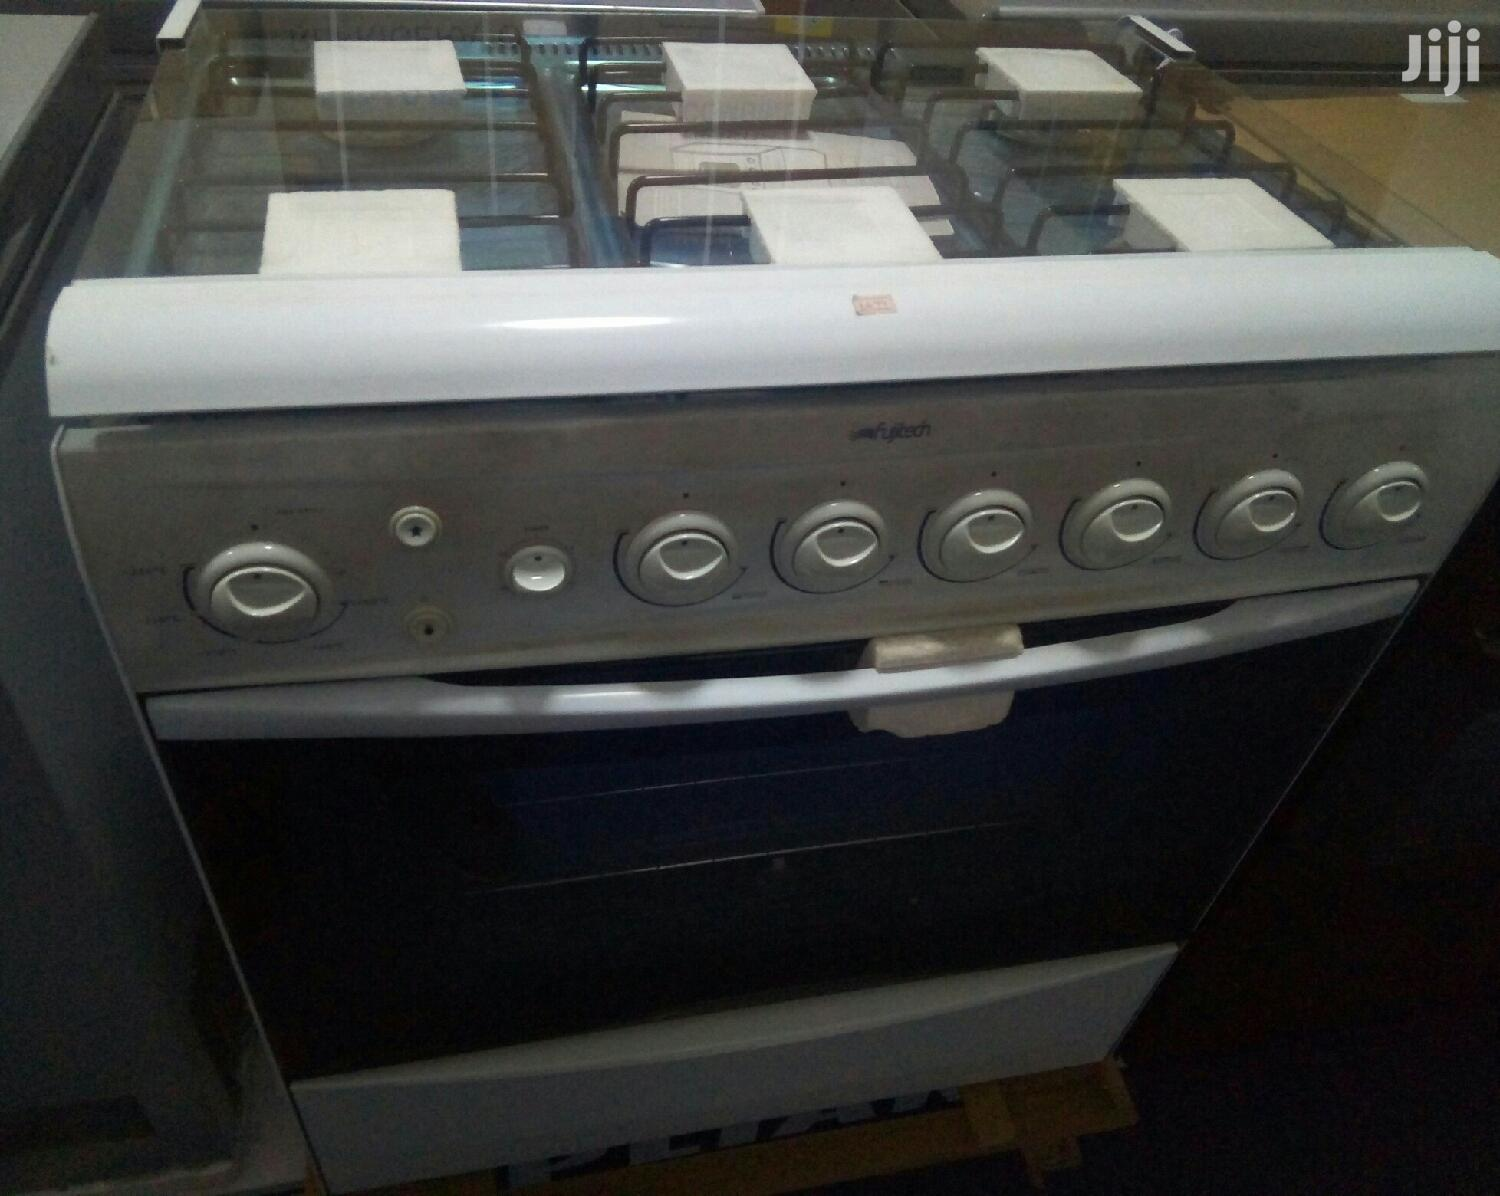 6 Burner Gas Cooker, Oven and Grill Fujitech